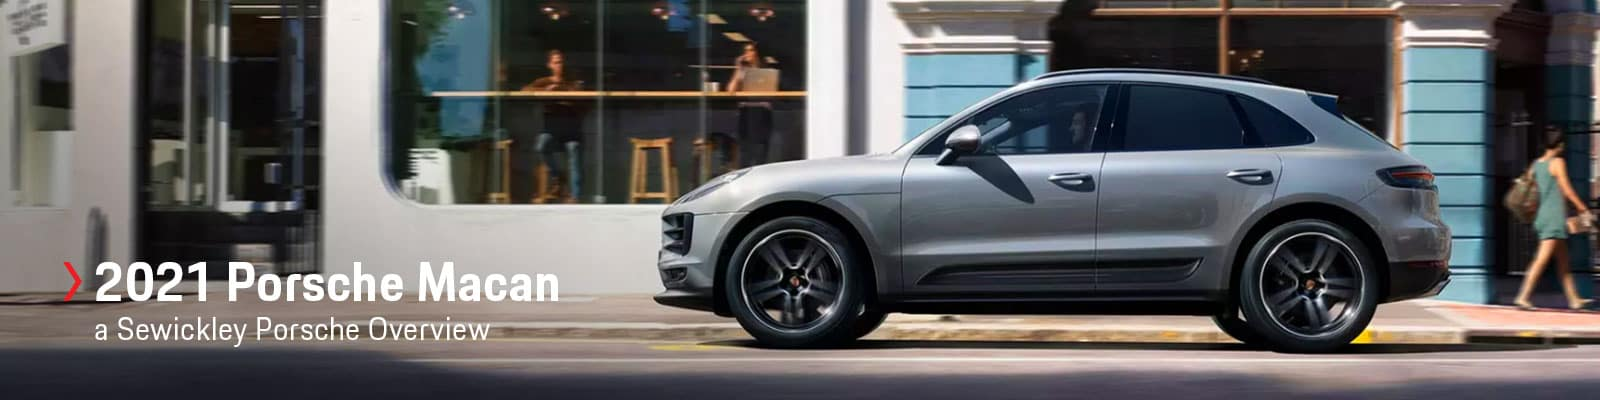 2021 Porsche Macan Overview at Sewickley Porsche